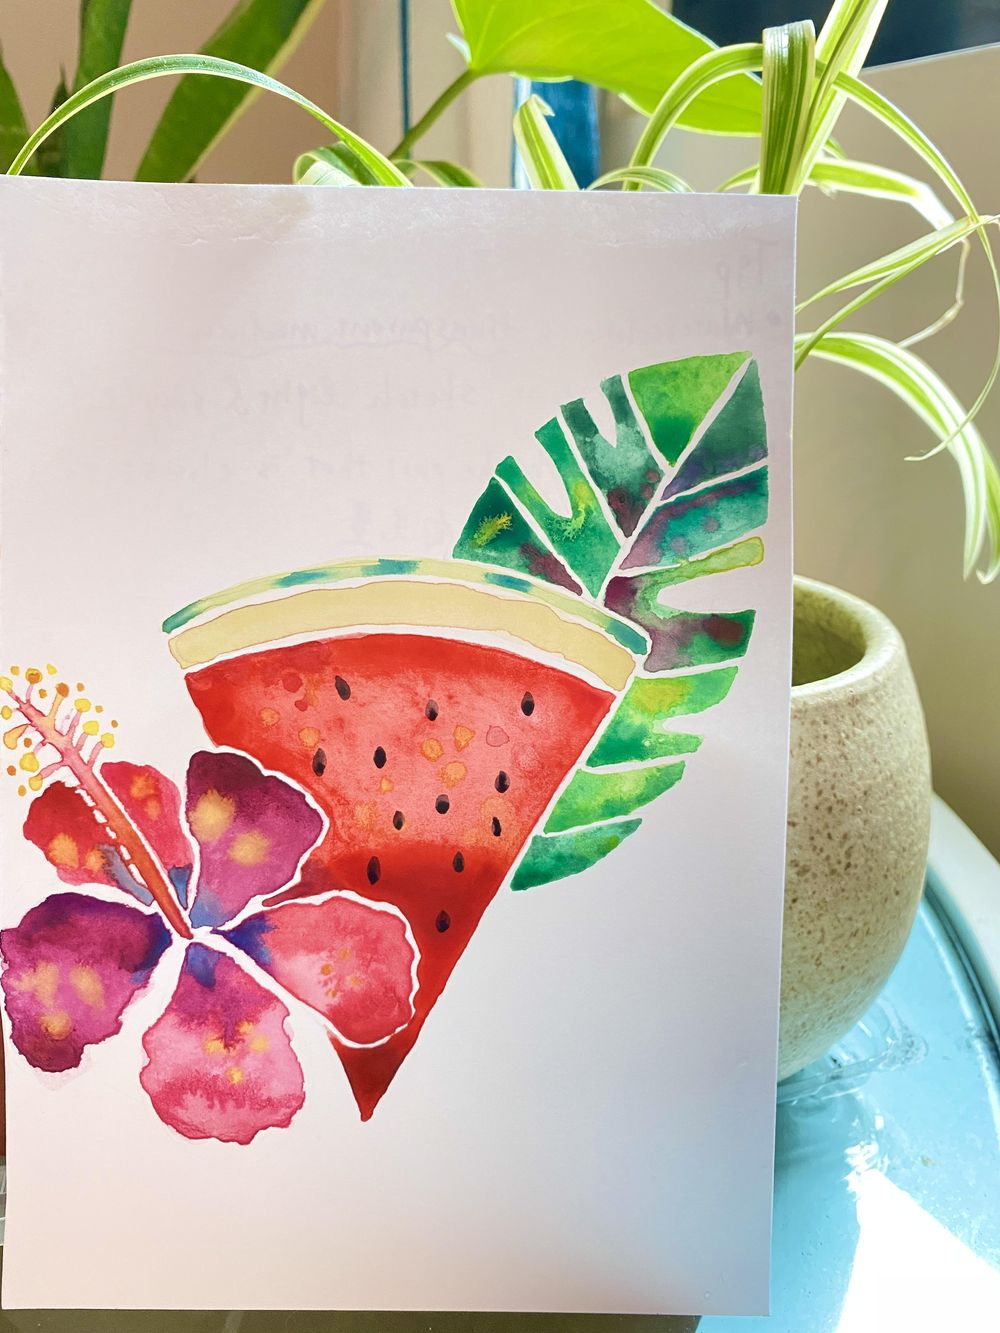 Vera loves watercolor - image 1 - student project